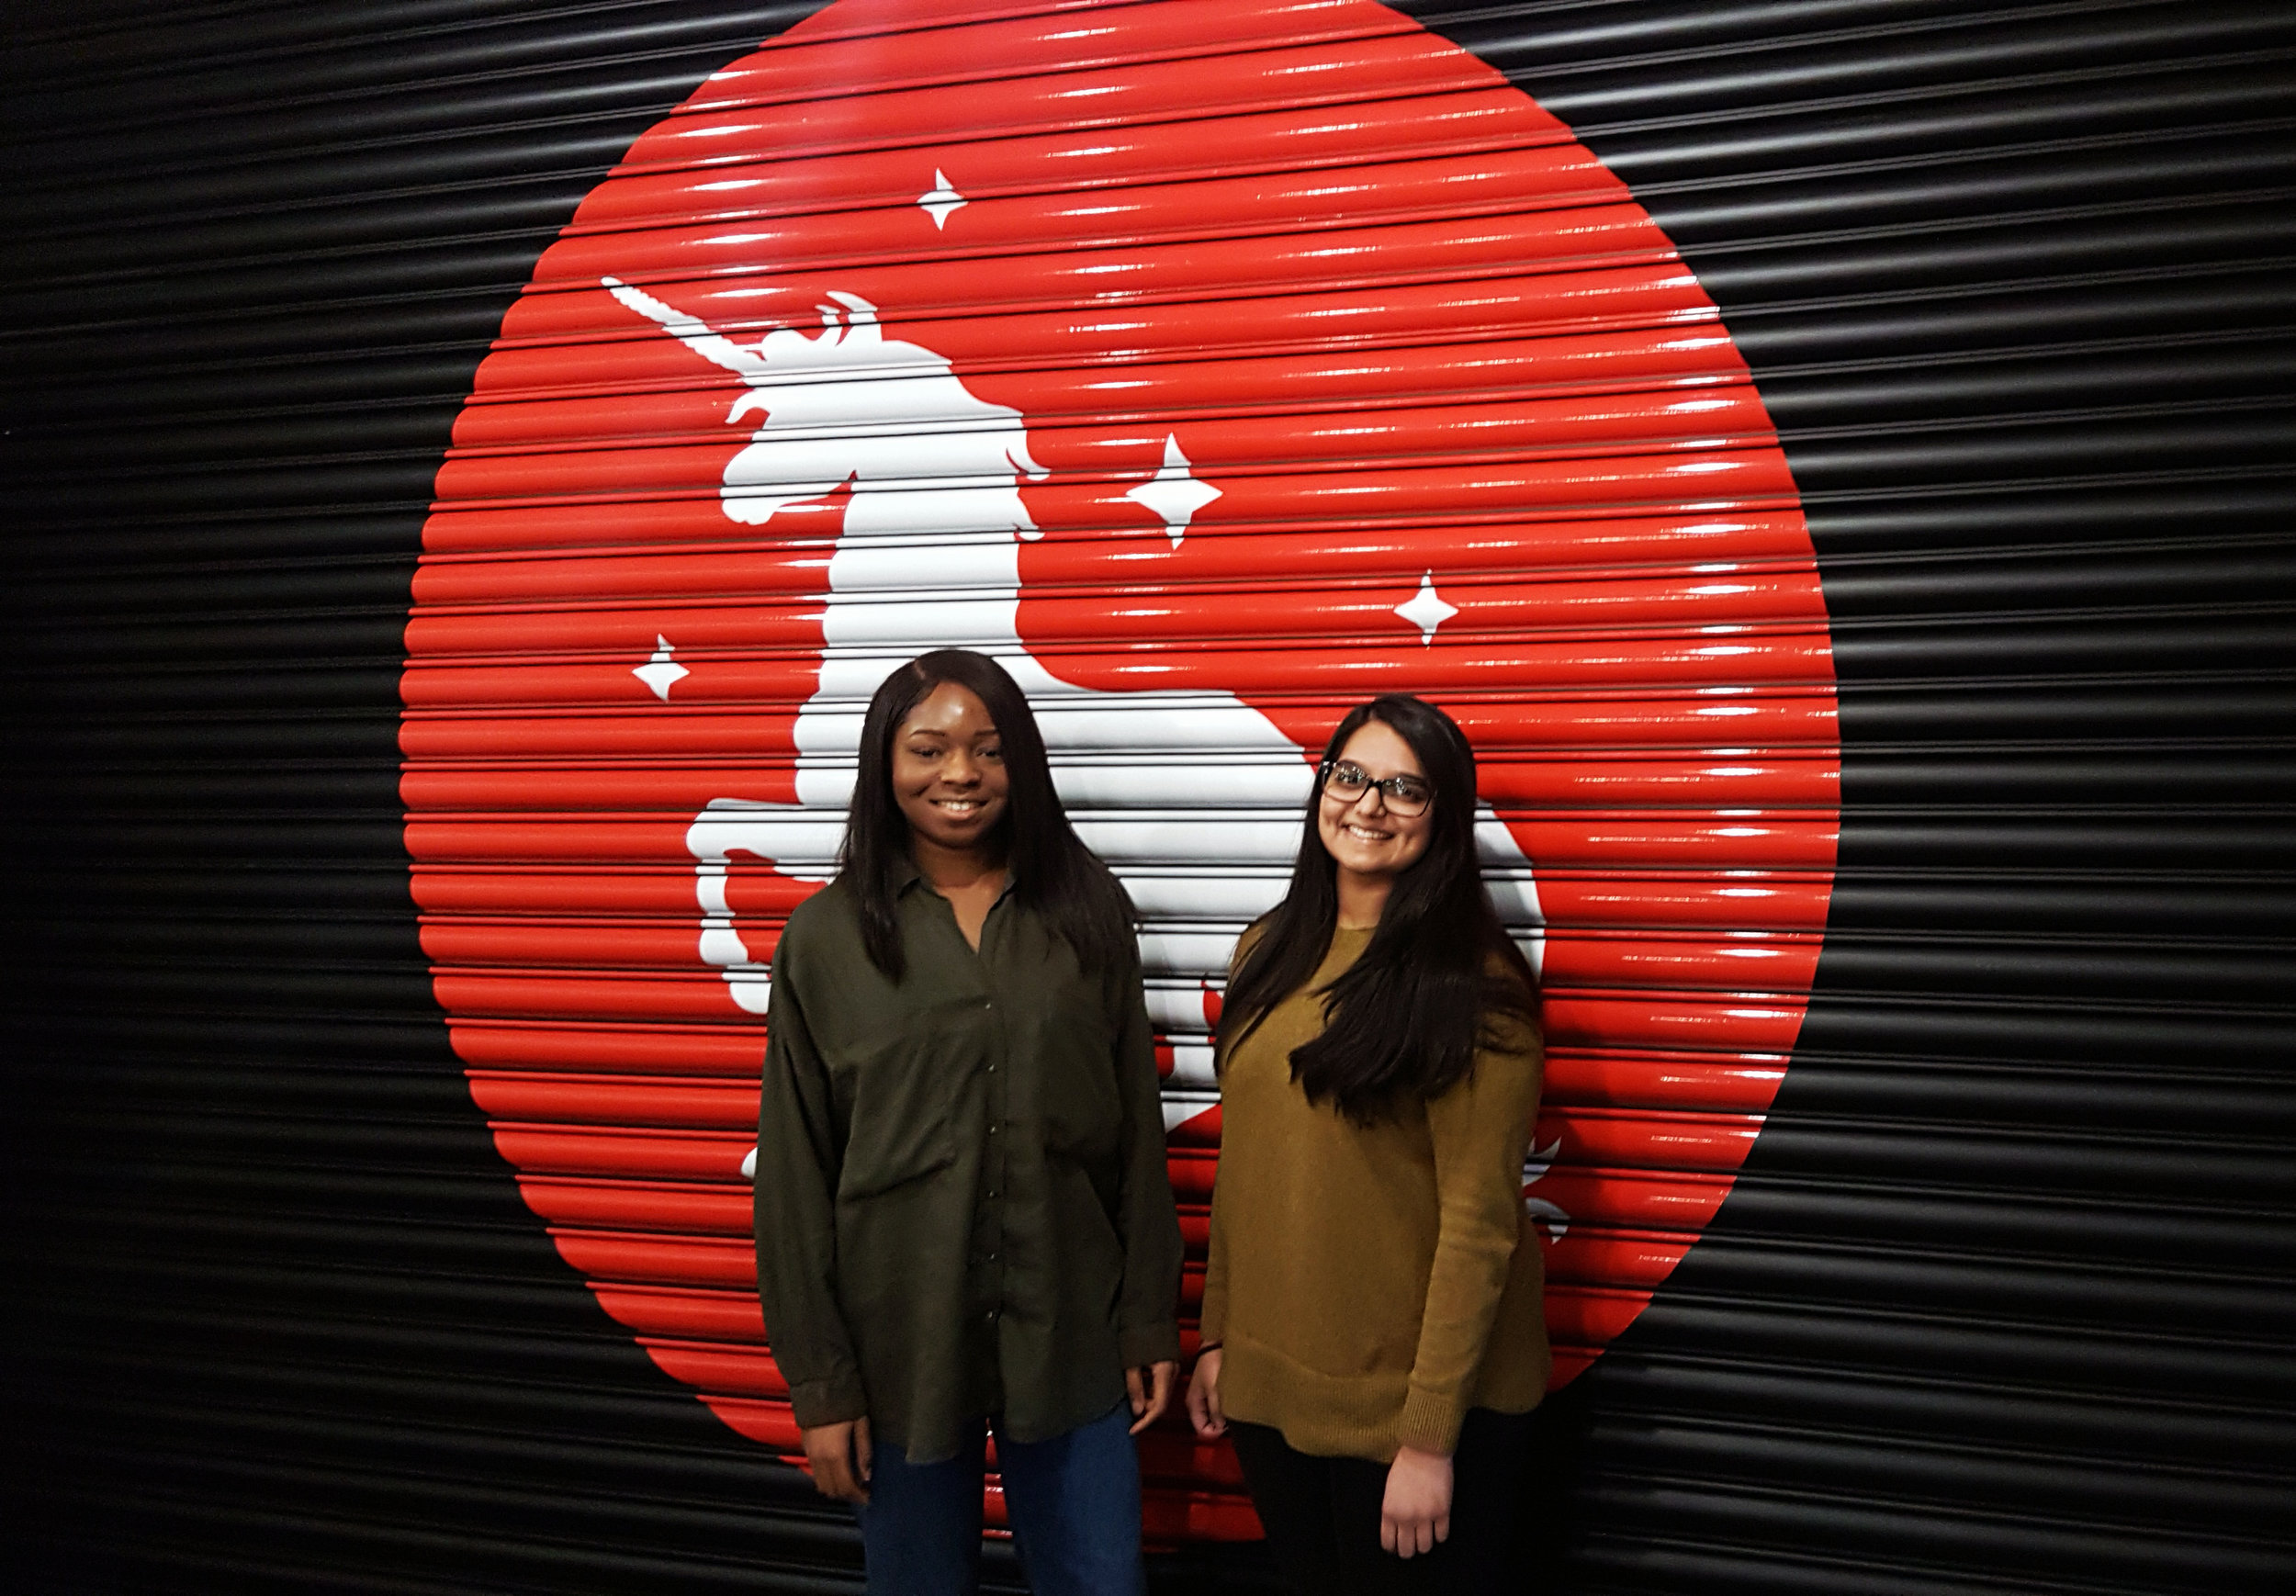 #32 Gayatri & Melody - Gayatri & Melody are a creative team on the Jolt academy, a diversity scheme which will give them a foot into 10 different agencies over 80 weeks. They've already completed placements at Proximity London, and Digitas and are now at Pablo. Gayatri graduated with a degree in Graphic Design at the University of Hertfordshire, and Melody studied International Relations. The pair have bags of enthusiasm and would be a welcome asset to any creative department.Twitter: @GayatriB_GDIWebsite:http://gayatribhudia.com/